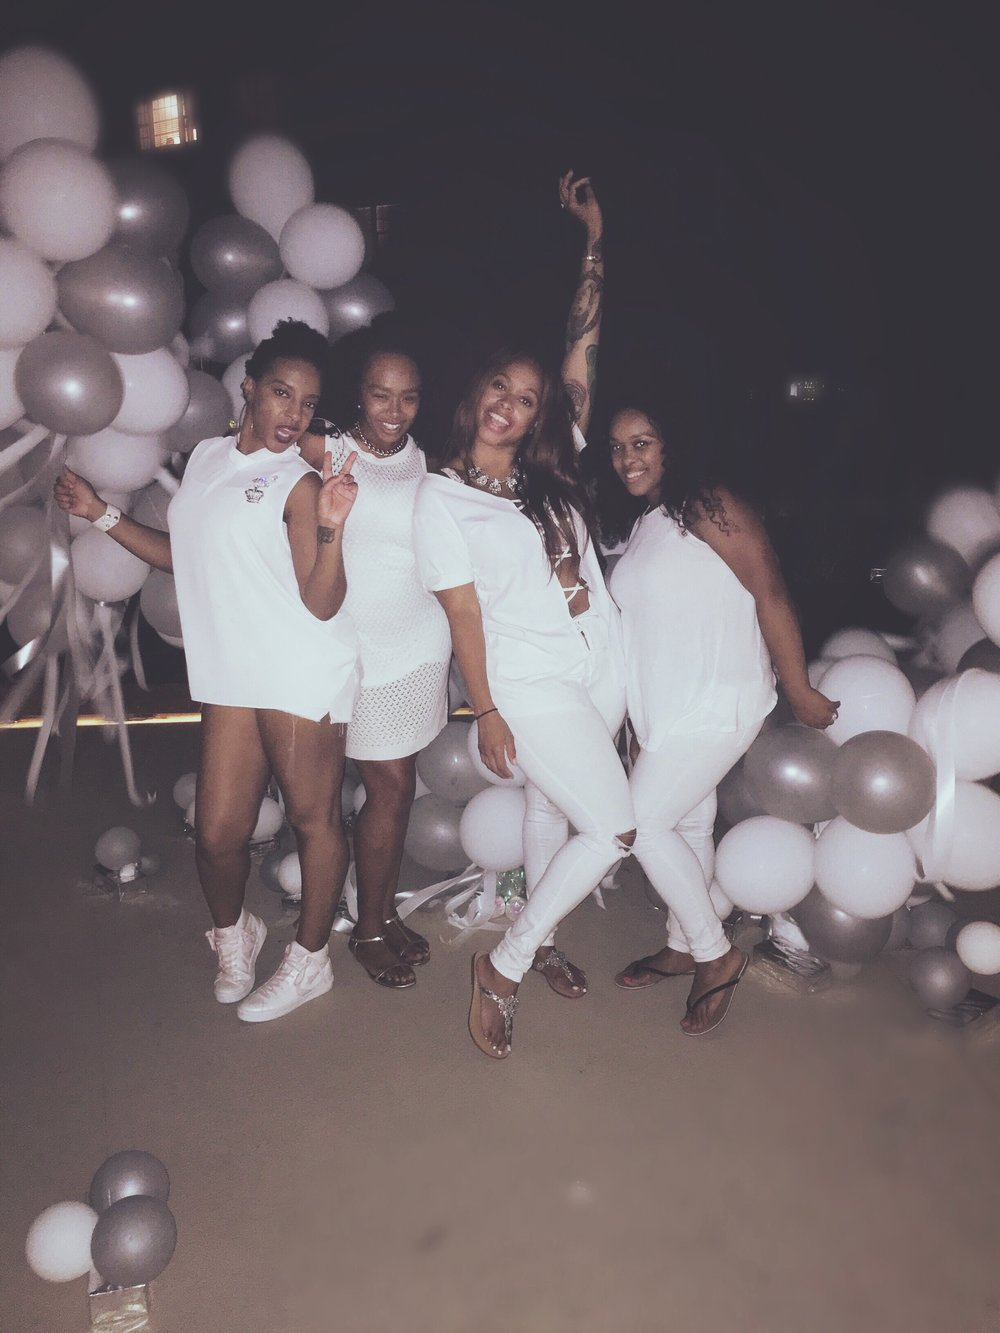 When the night was over, we posed with the balloons. Queen, Shenelle, Me & Sheena